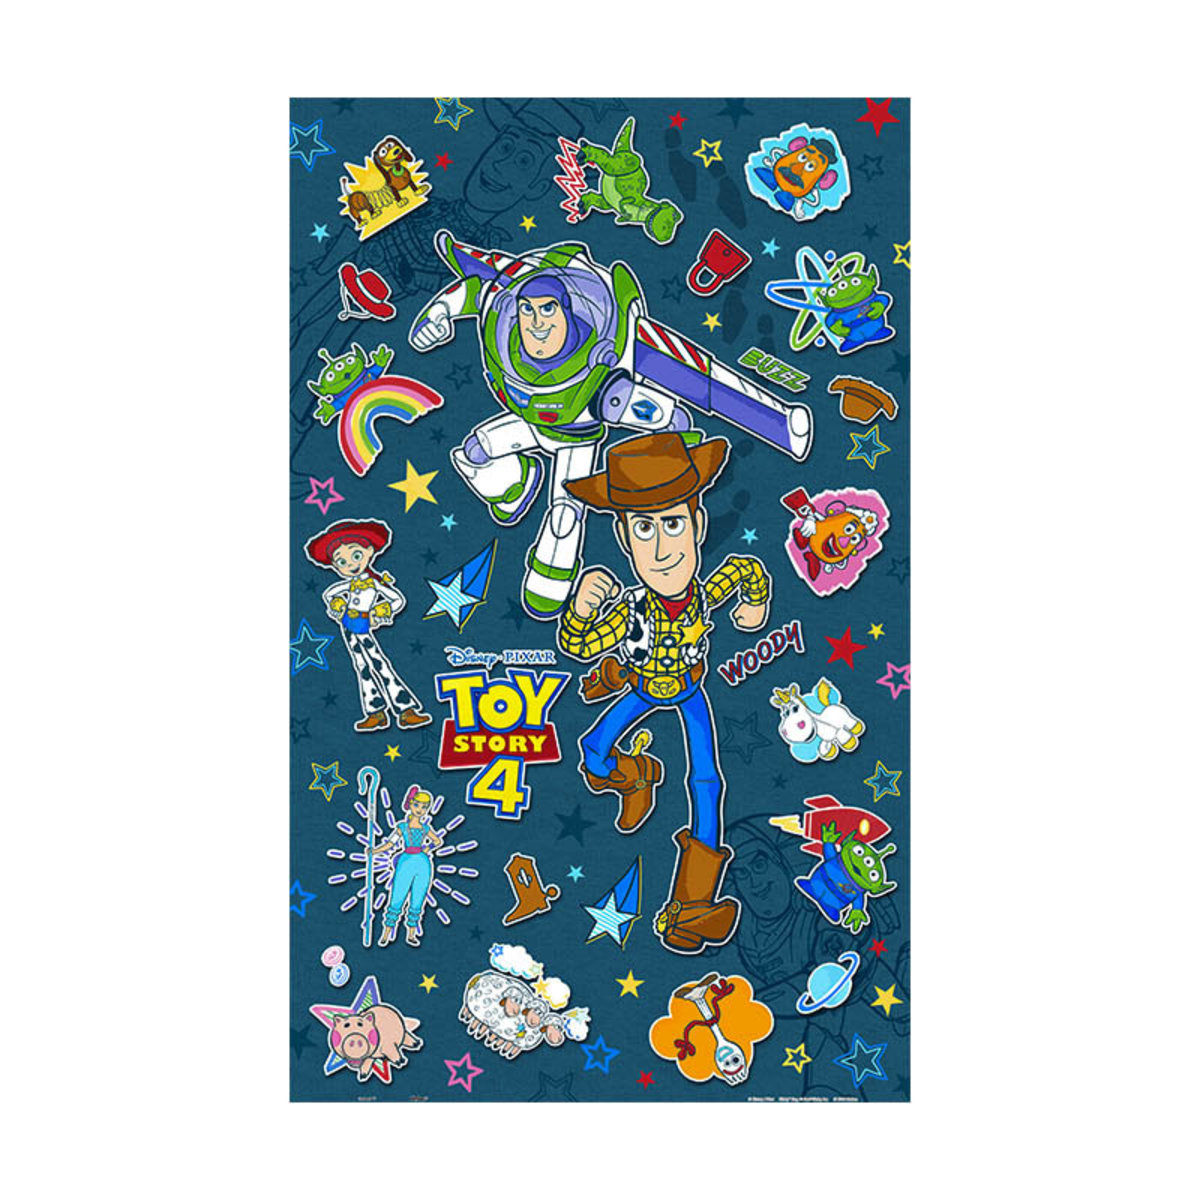 Toy Story 4 - Sticker Collection [Licensed by Disney]